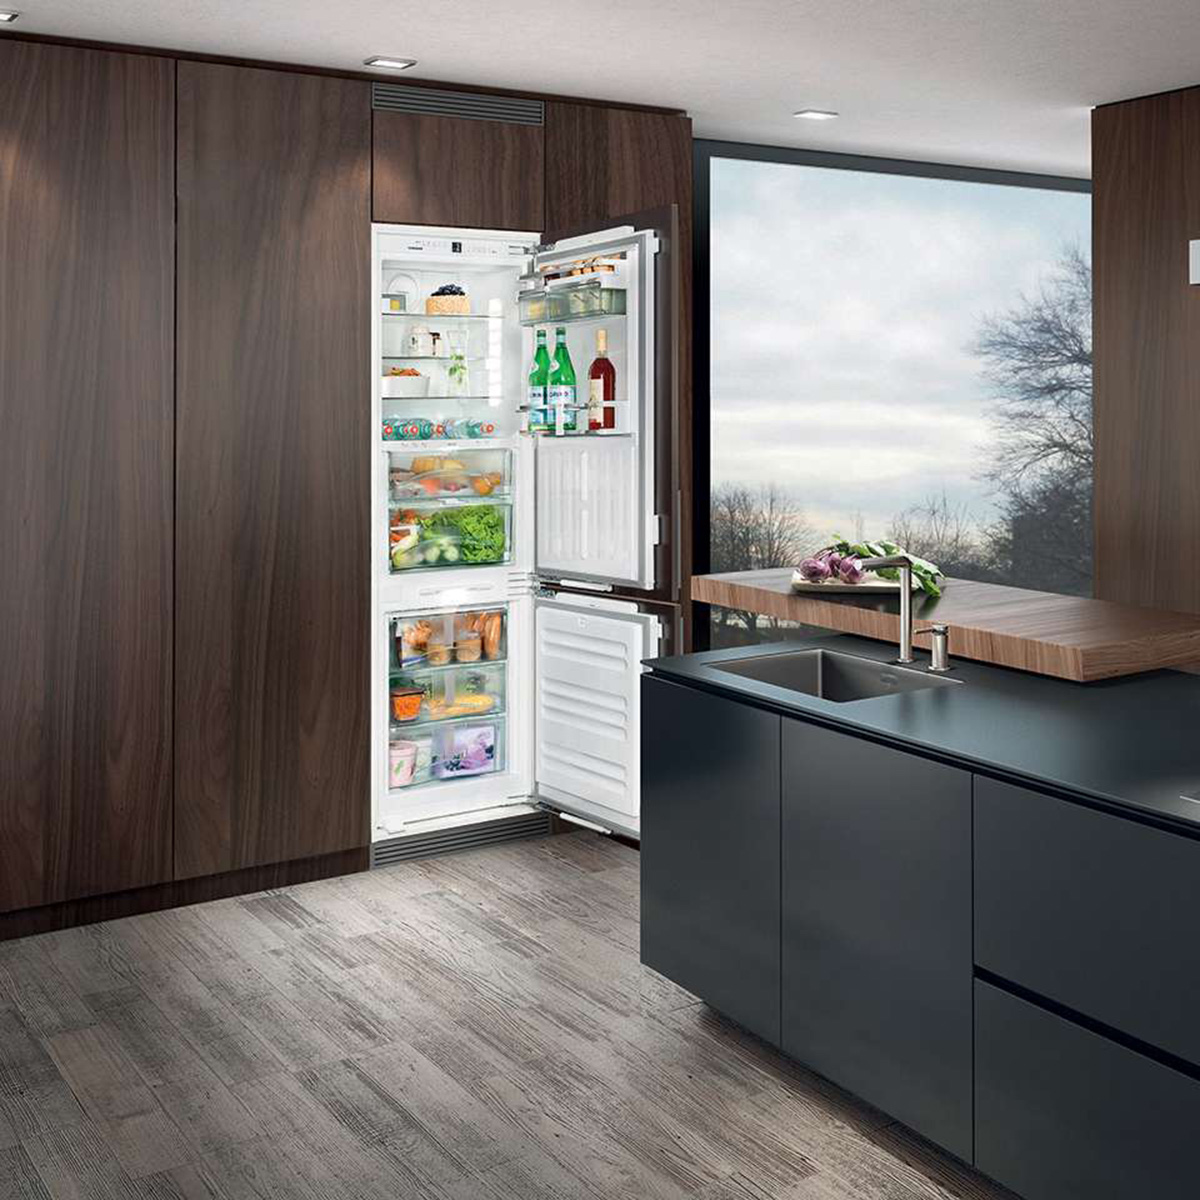 kitchen-with-built-in-refrigerator-3